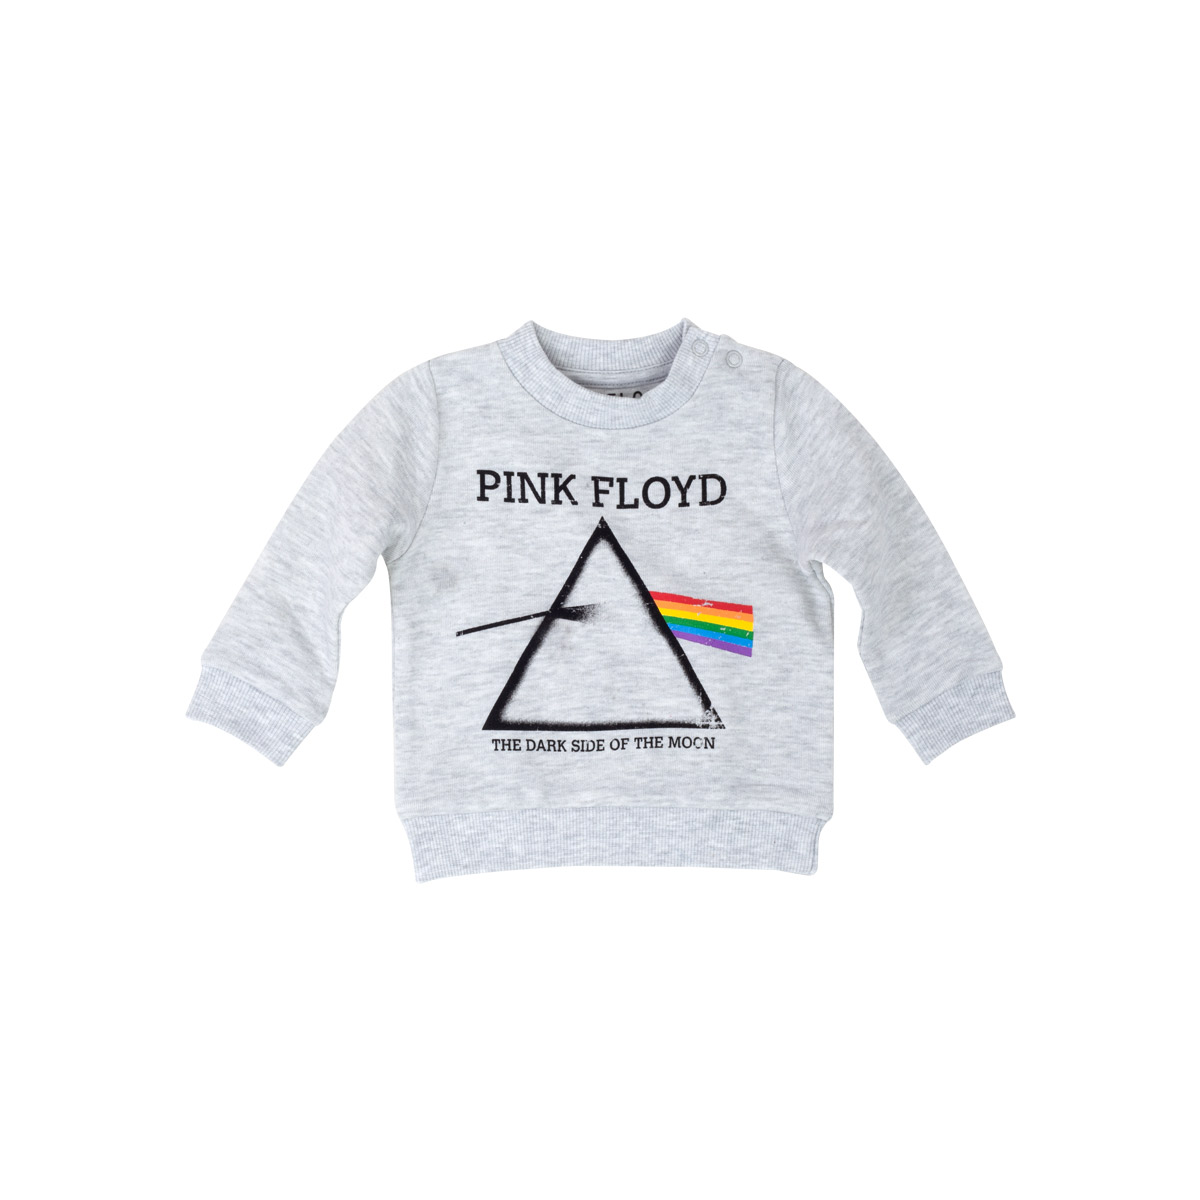 The Dark Side of the Moon Longsleeve Infant Sweater